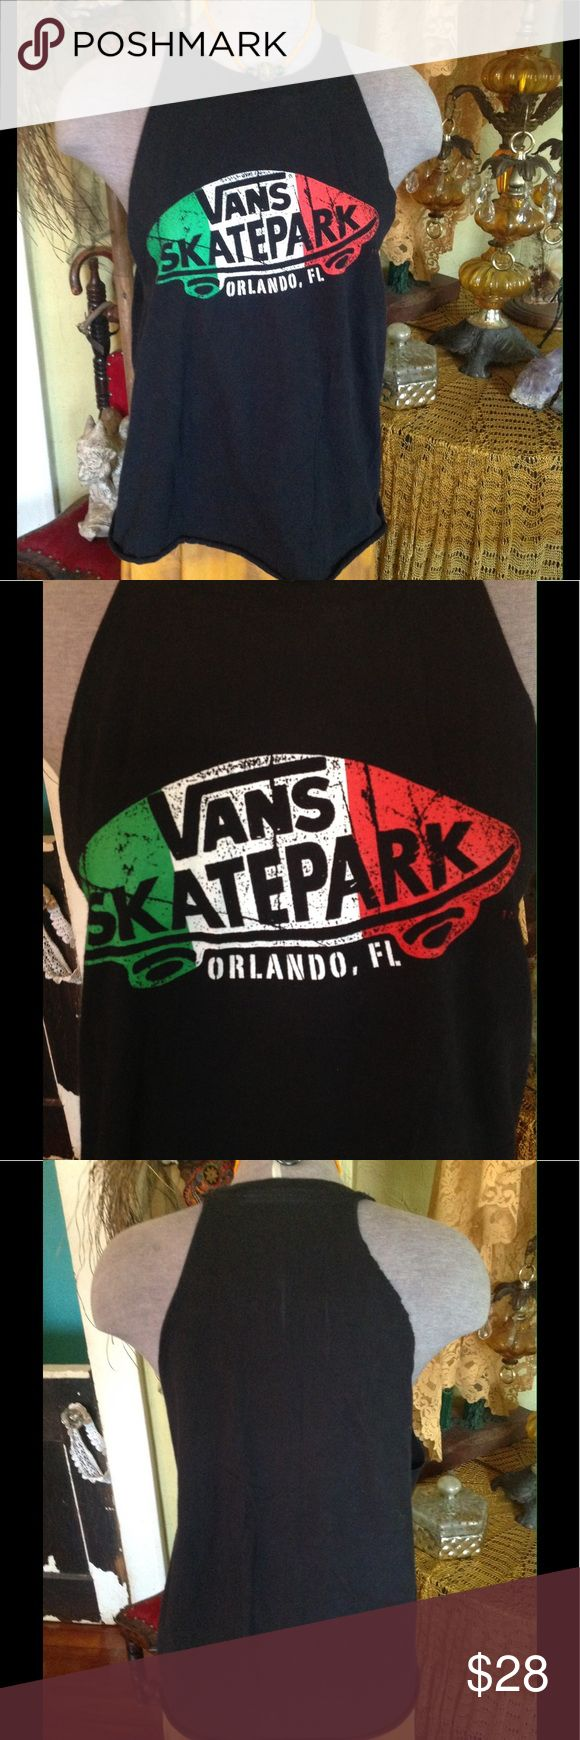 He was a skater boy, she said see you later boy Vans, altered, tee, tank top, boho, gypsy, festival, summer, skater, skate park, off the wall, Orlando, Fl, Avril Lavigne Vans Tops Tank Tops